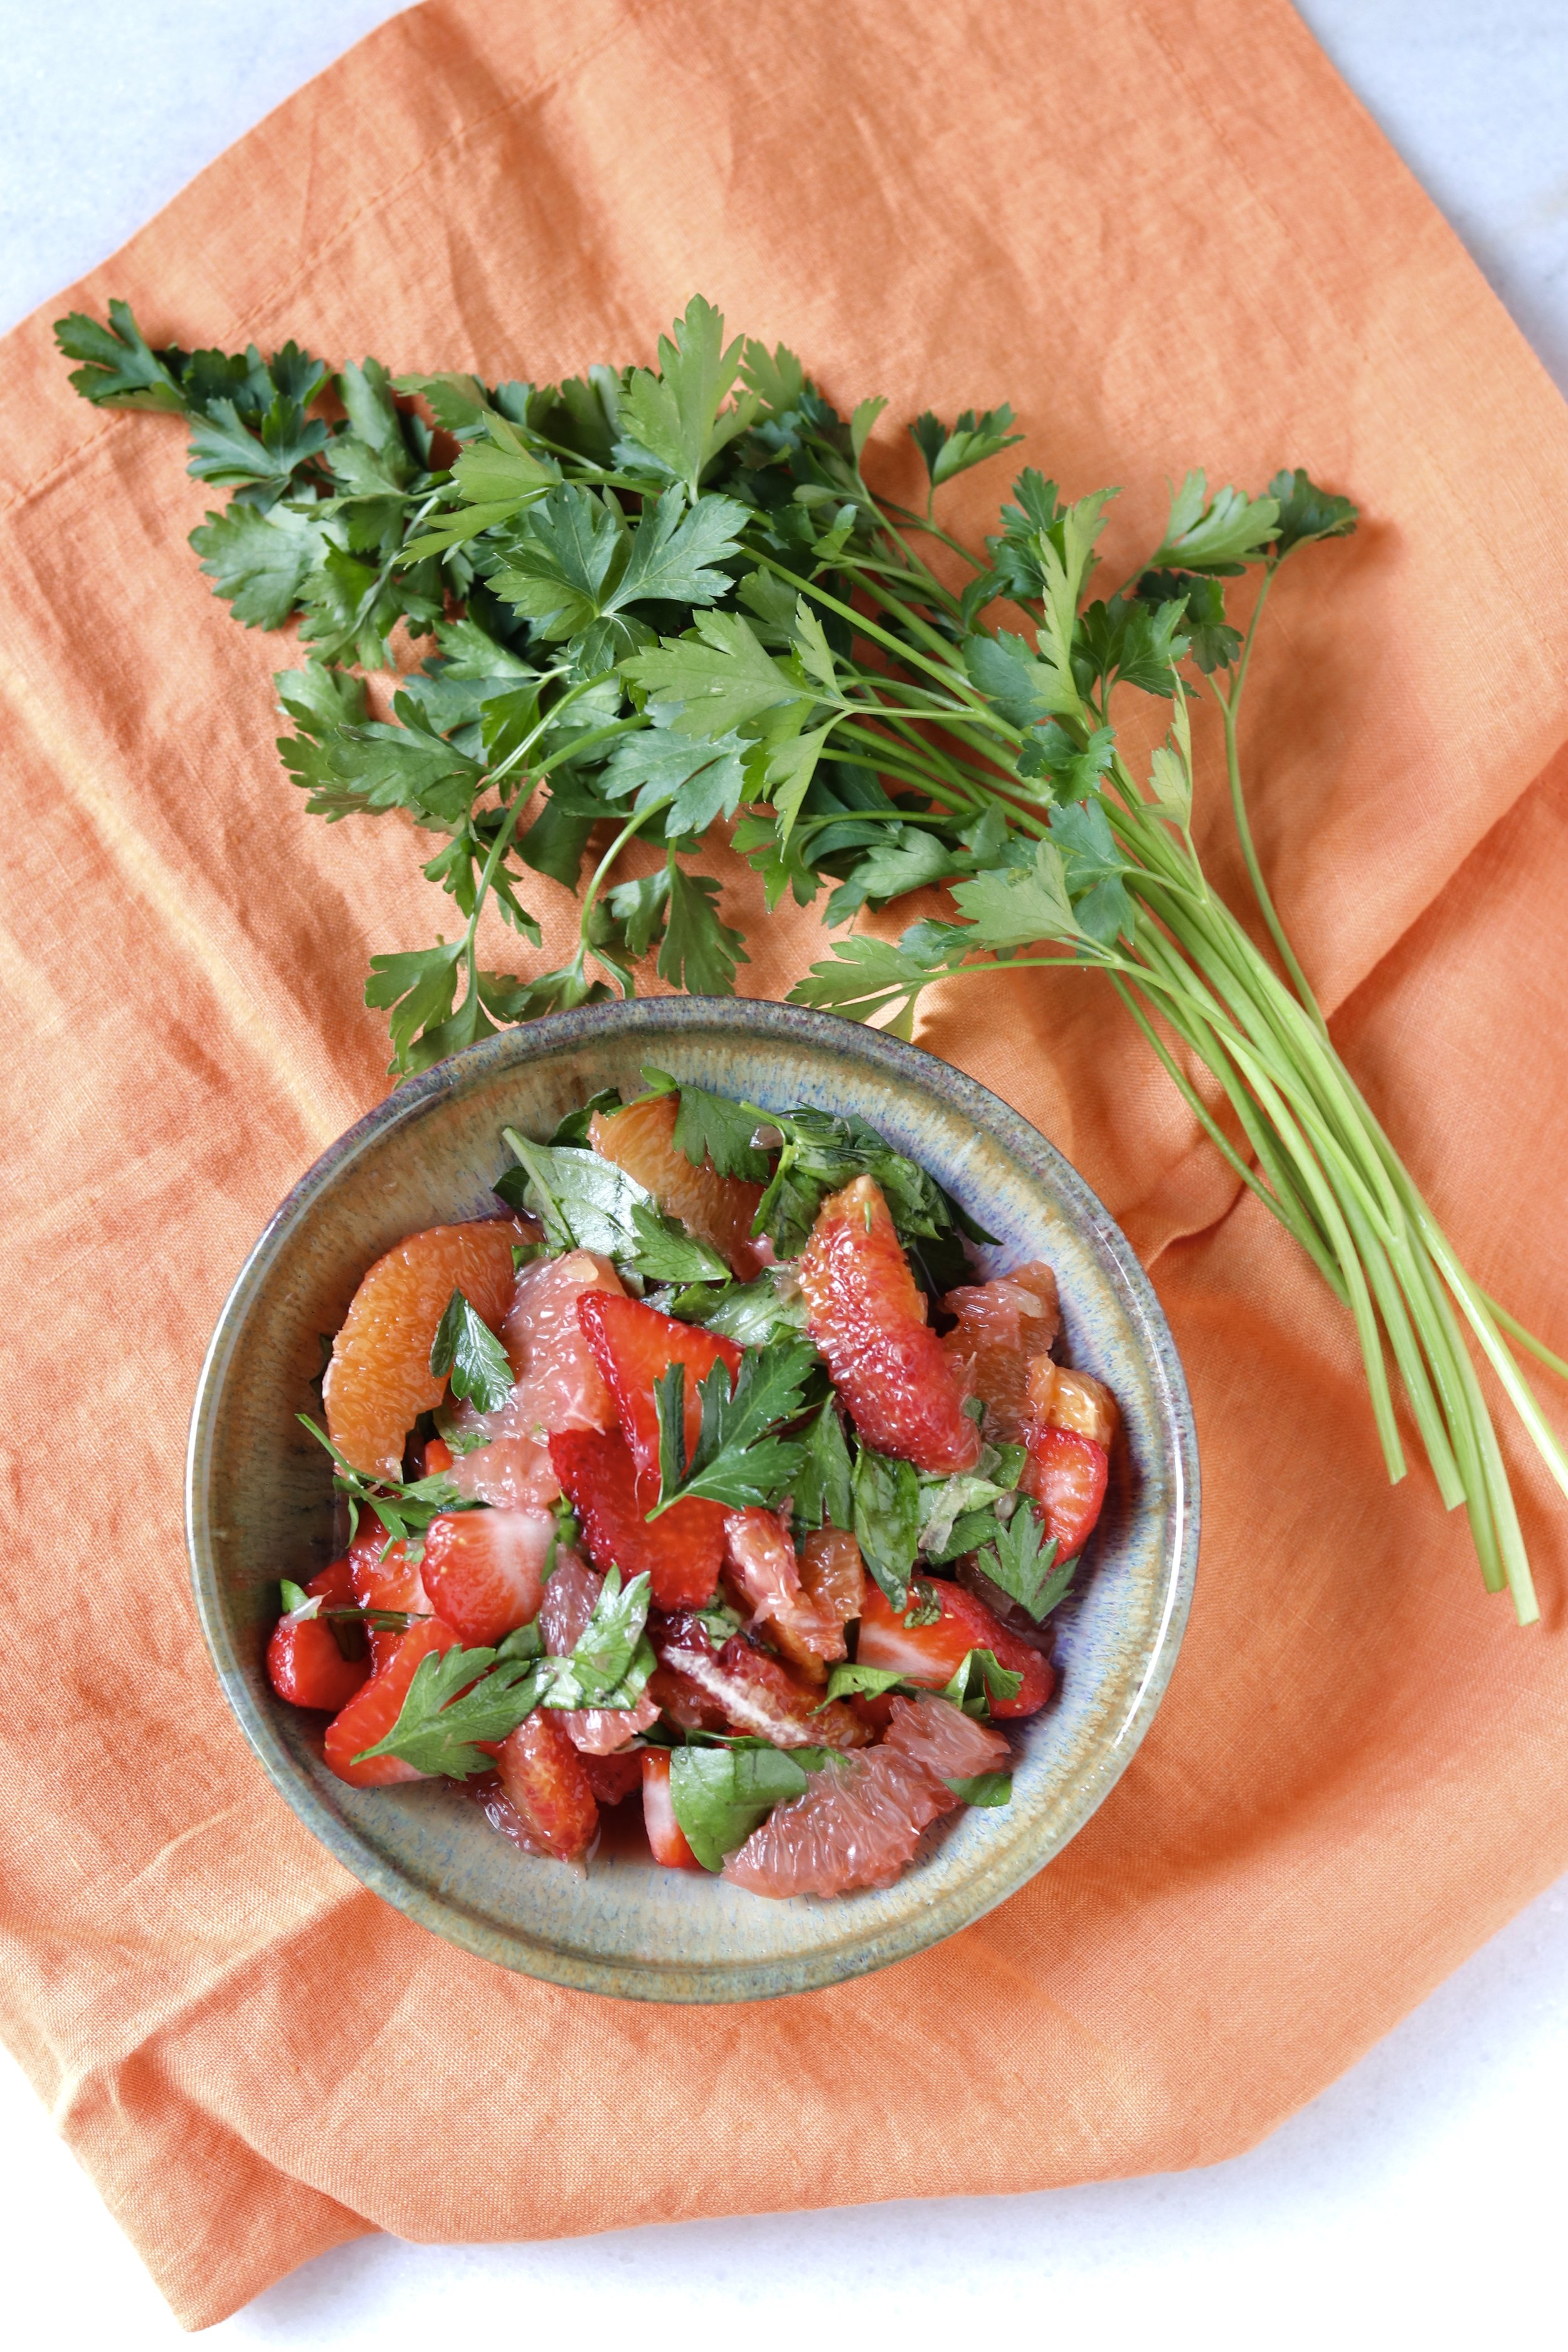 Herb and Citrus Salad by I'd Eat That Food